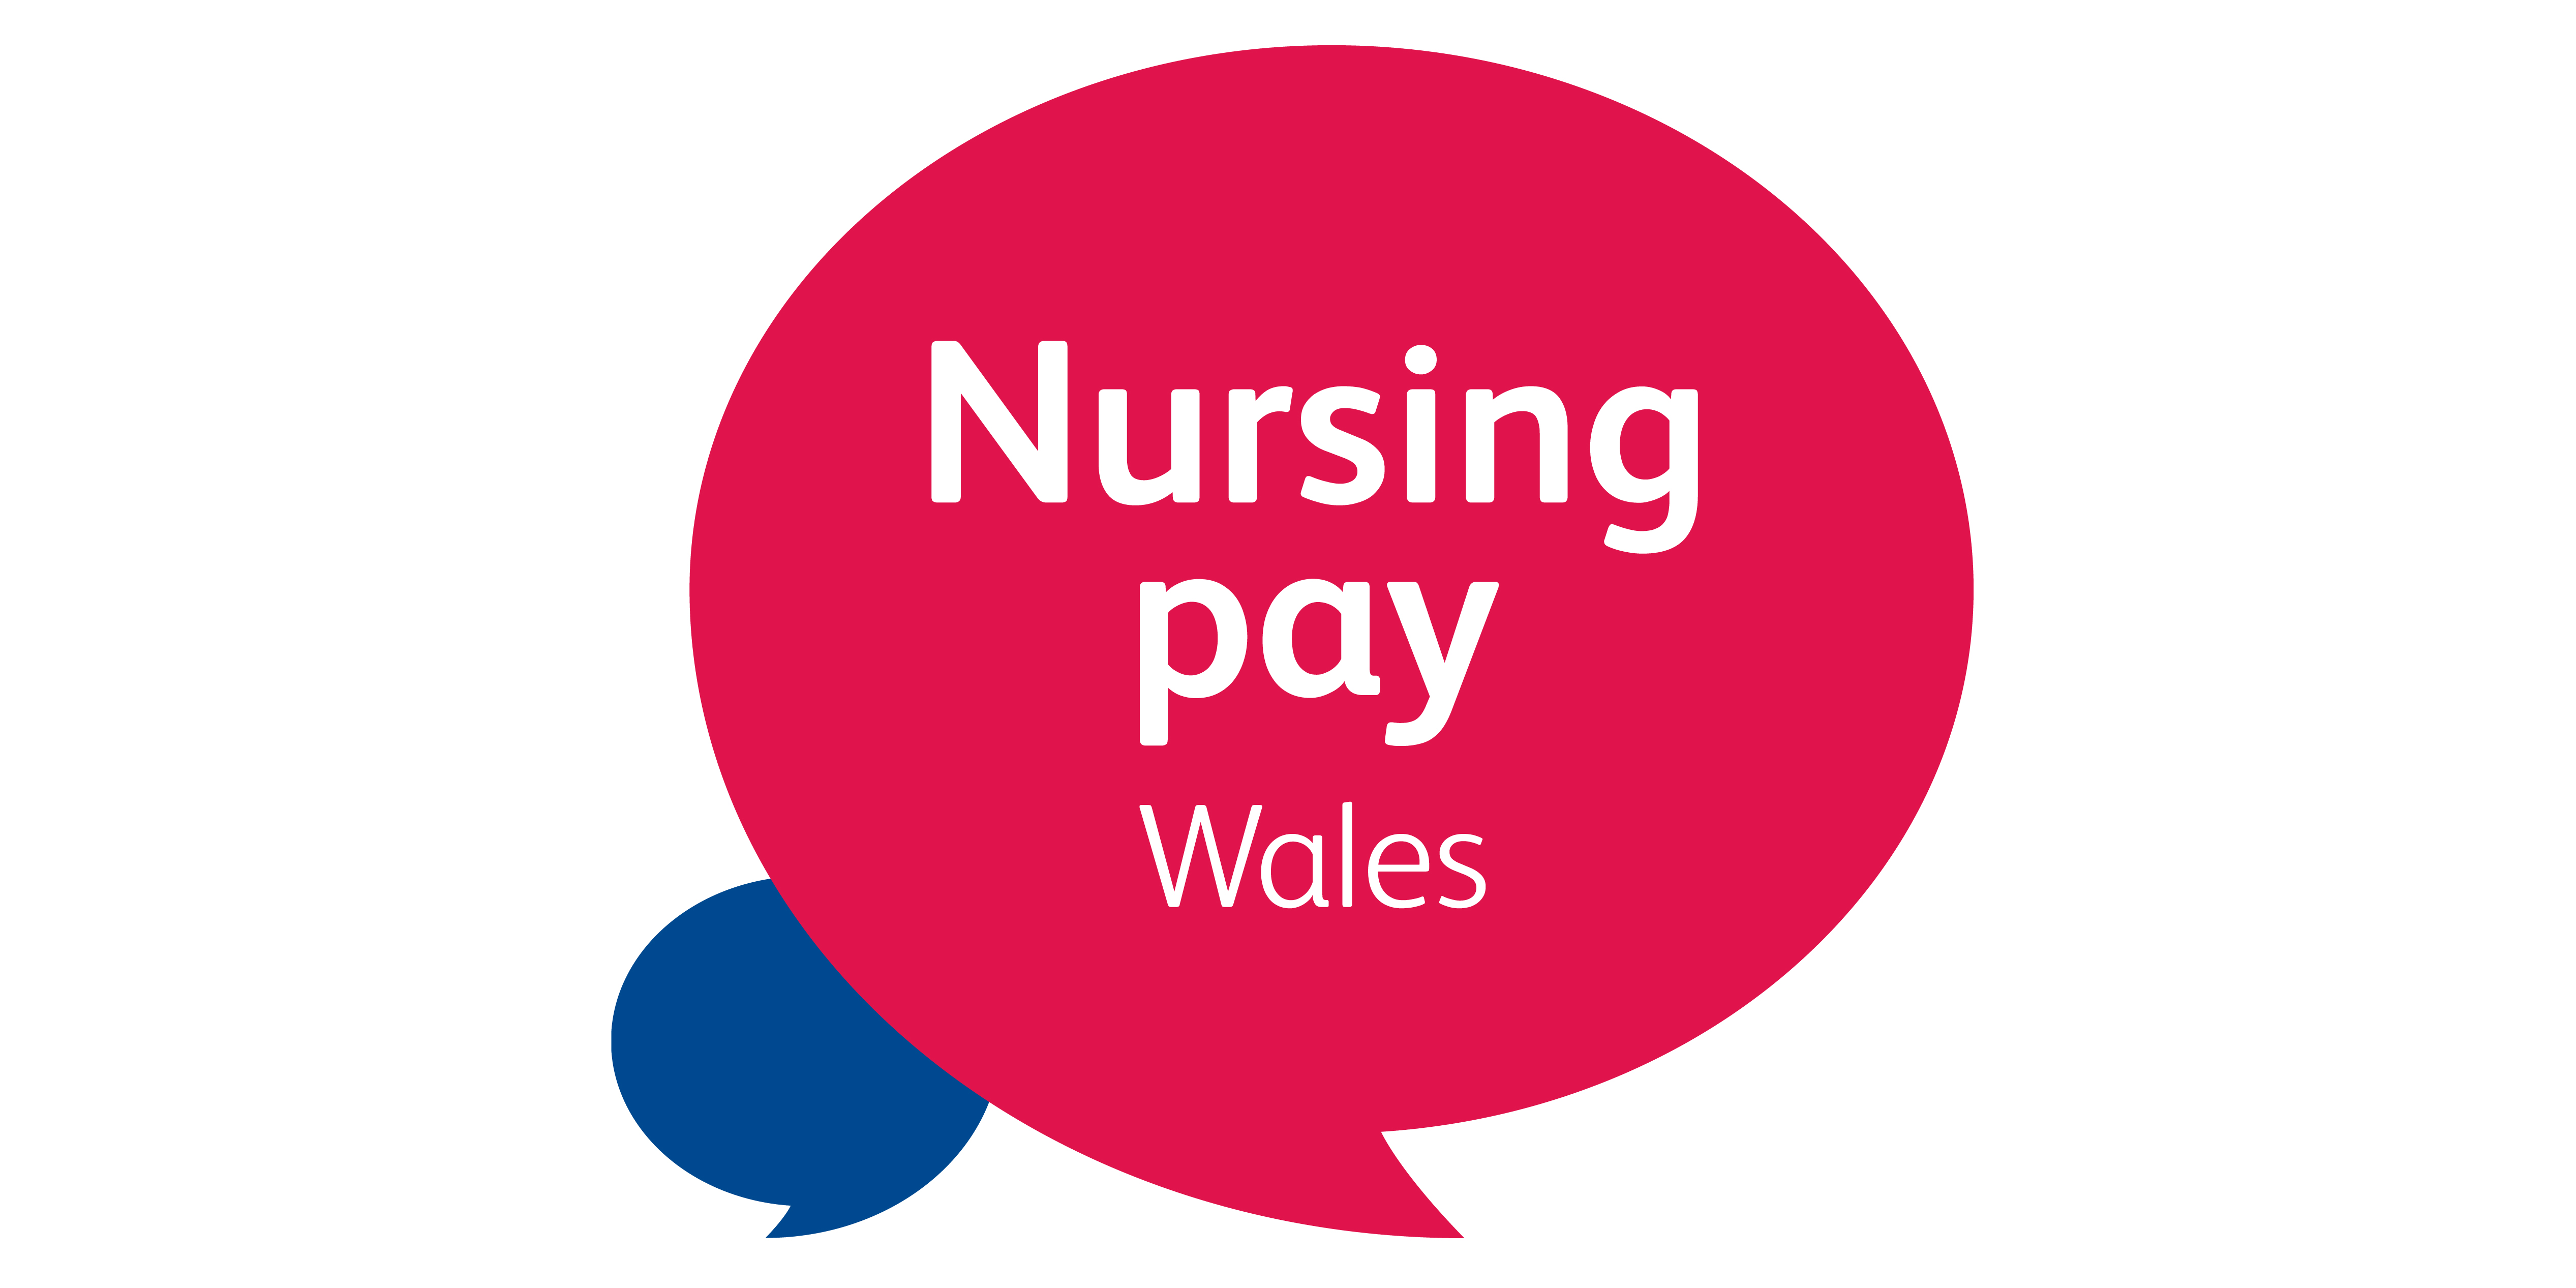 Nursing pay Wales